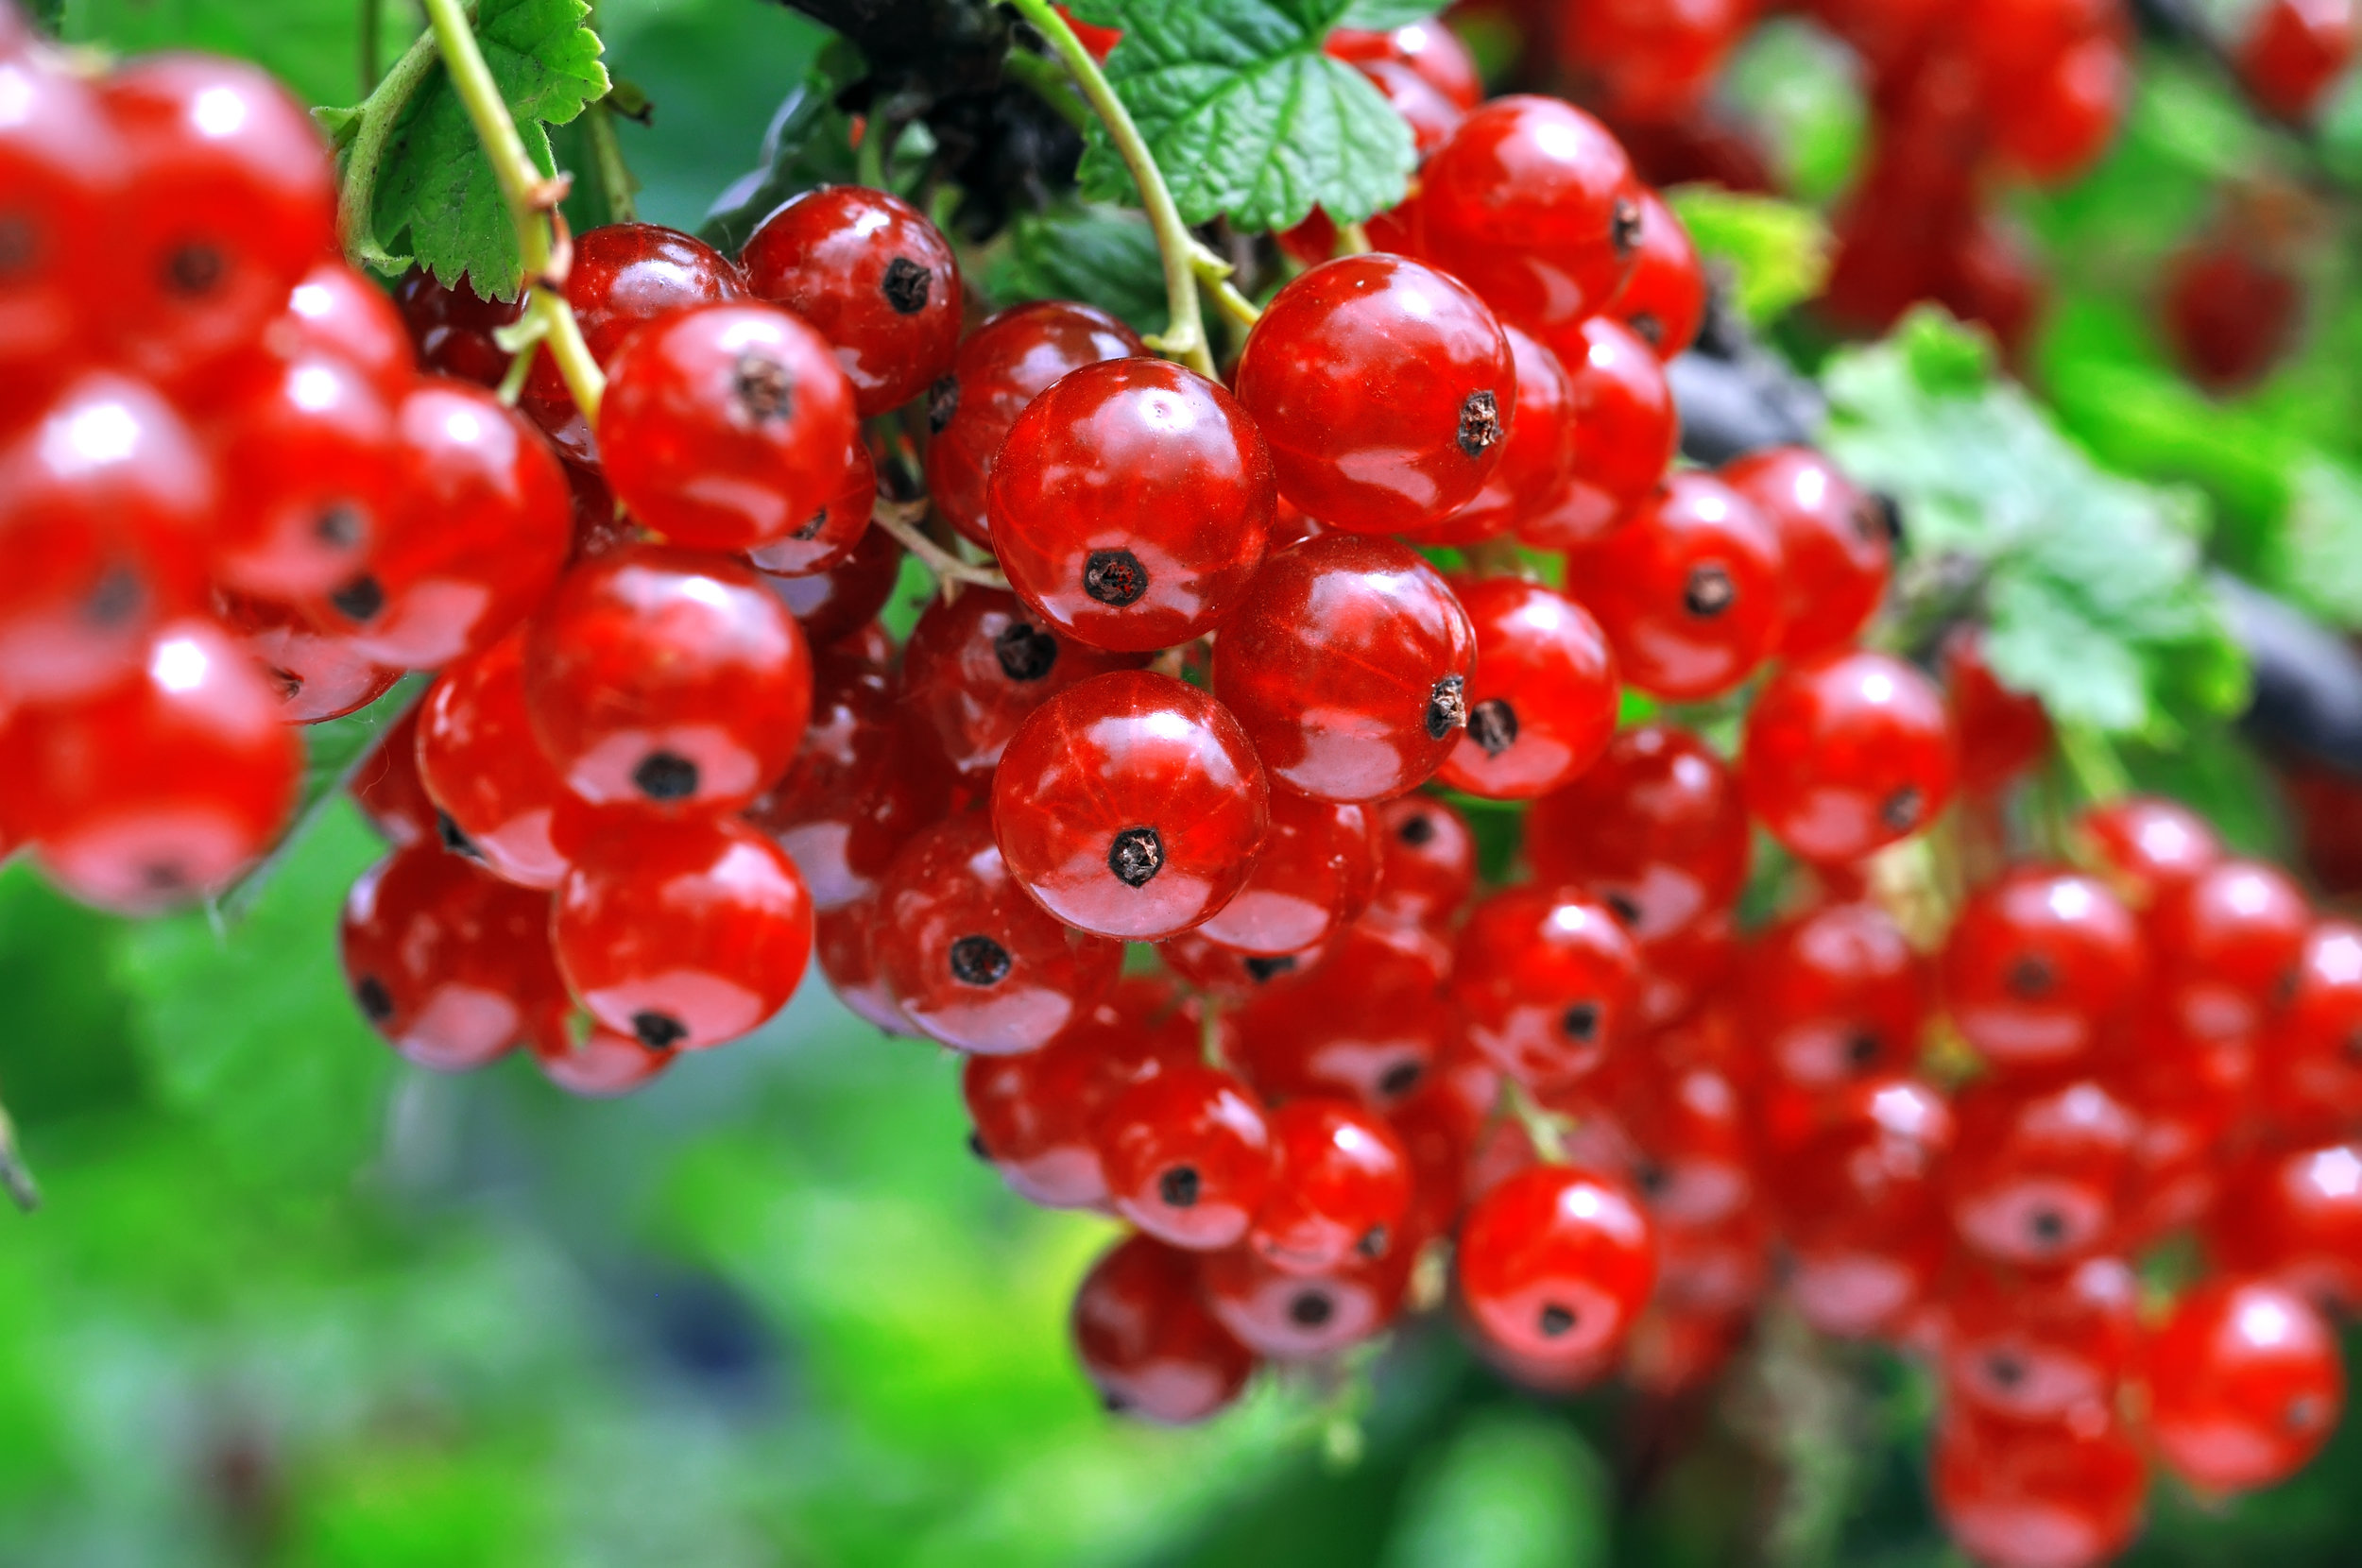 close-up-of-a--red-currant-519835970_4288x2848.jpeg